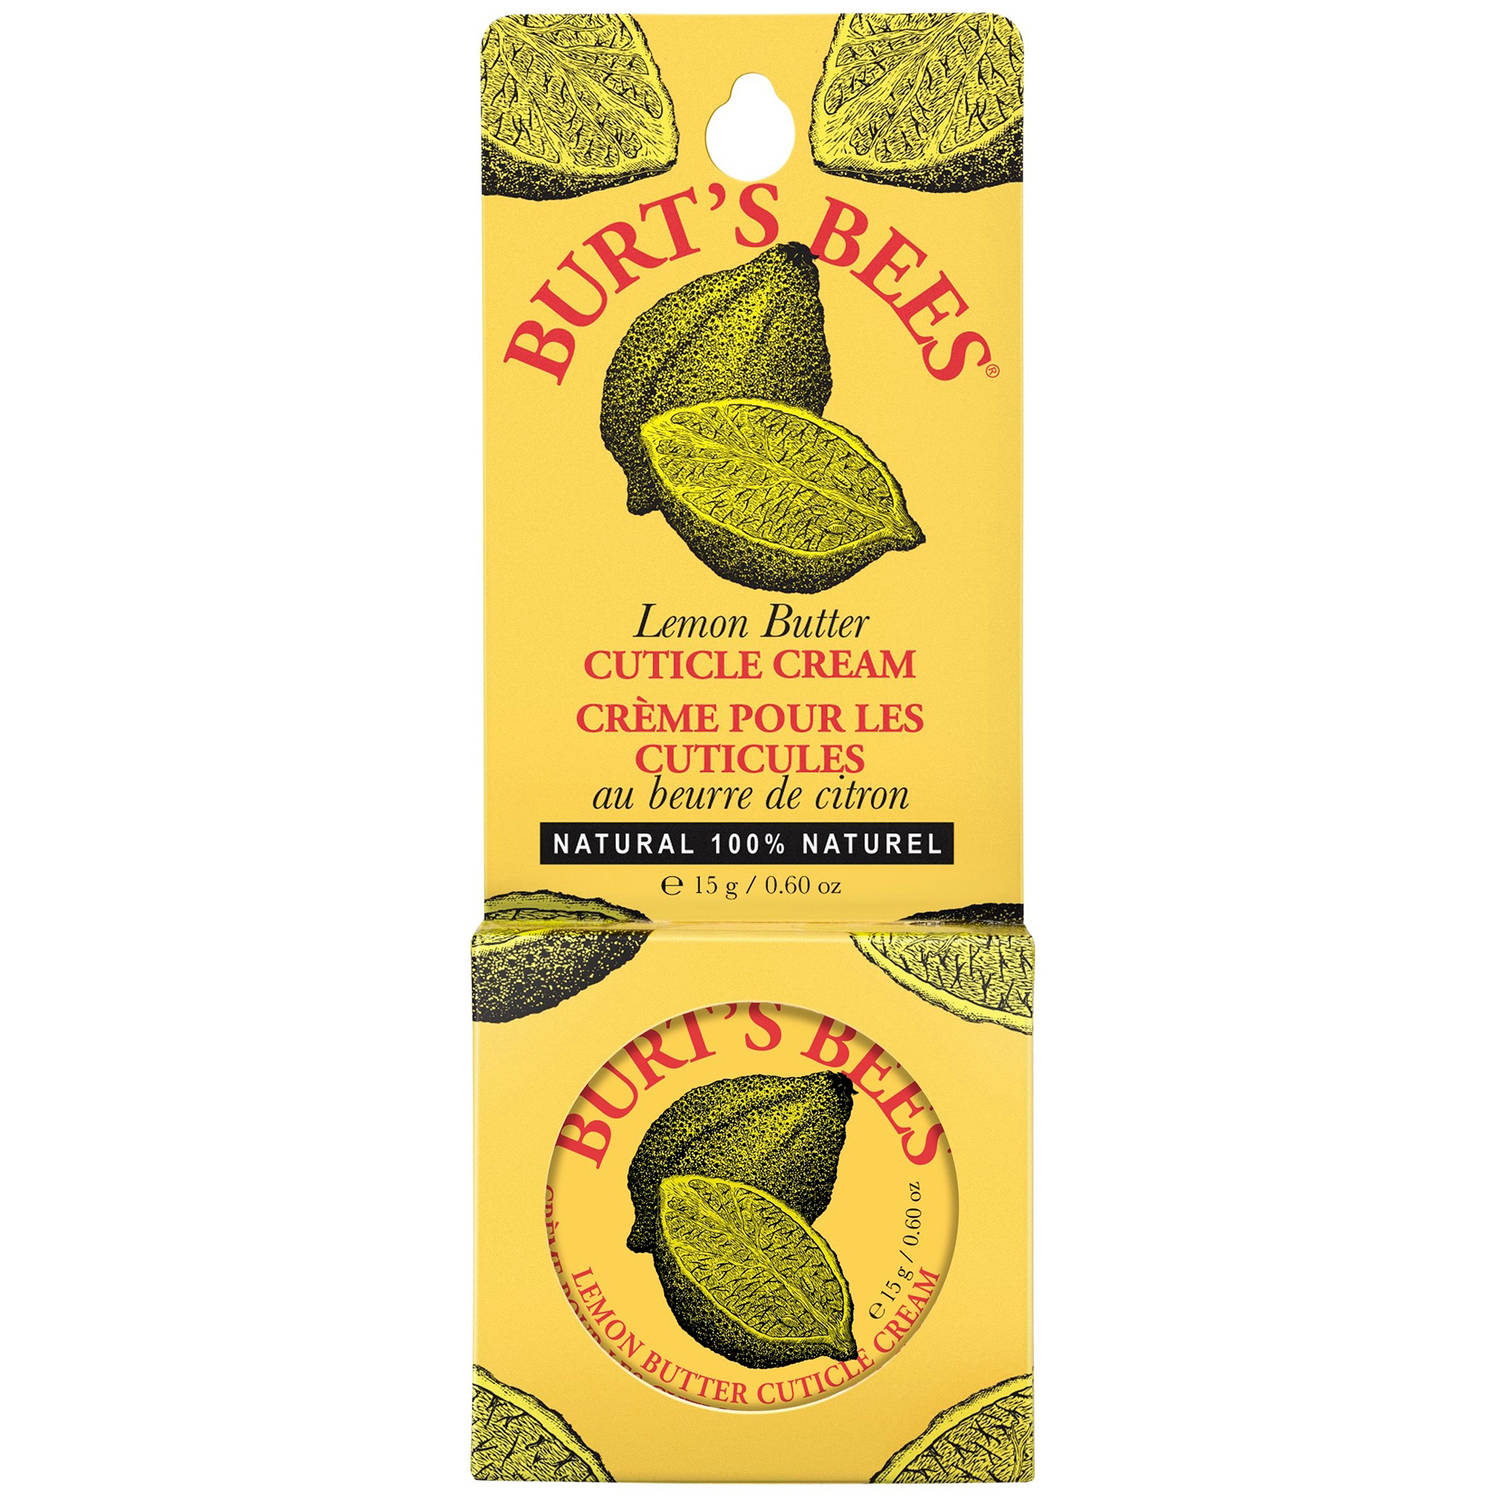 Burt's Bees Lemon Butter Cuticle Cream, 0.6 Ounces